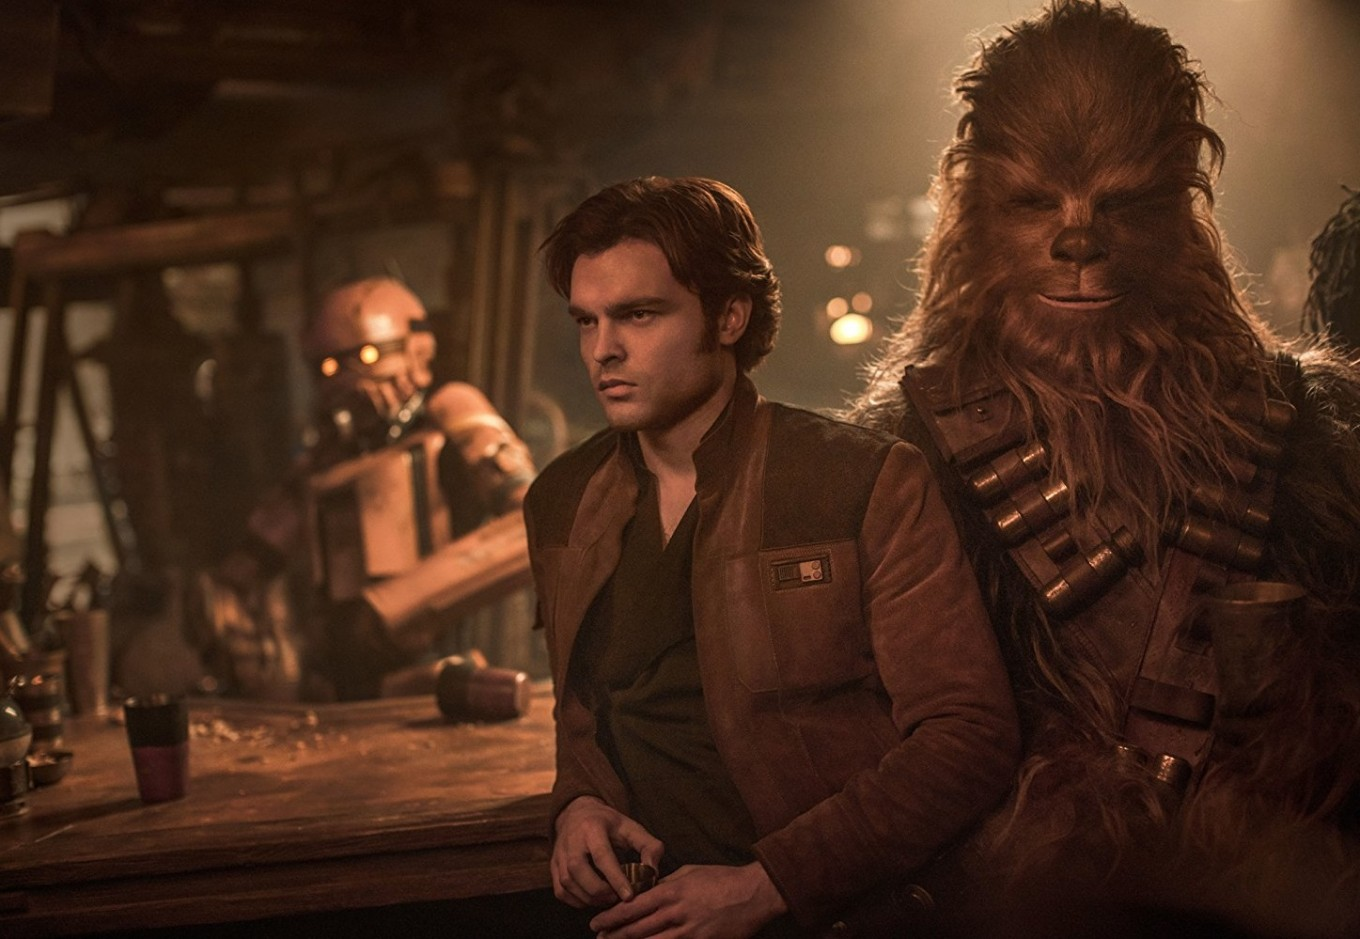 New 'Solo' charms critics after 'Star Wars' filmmaking drama